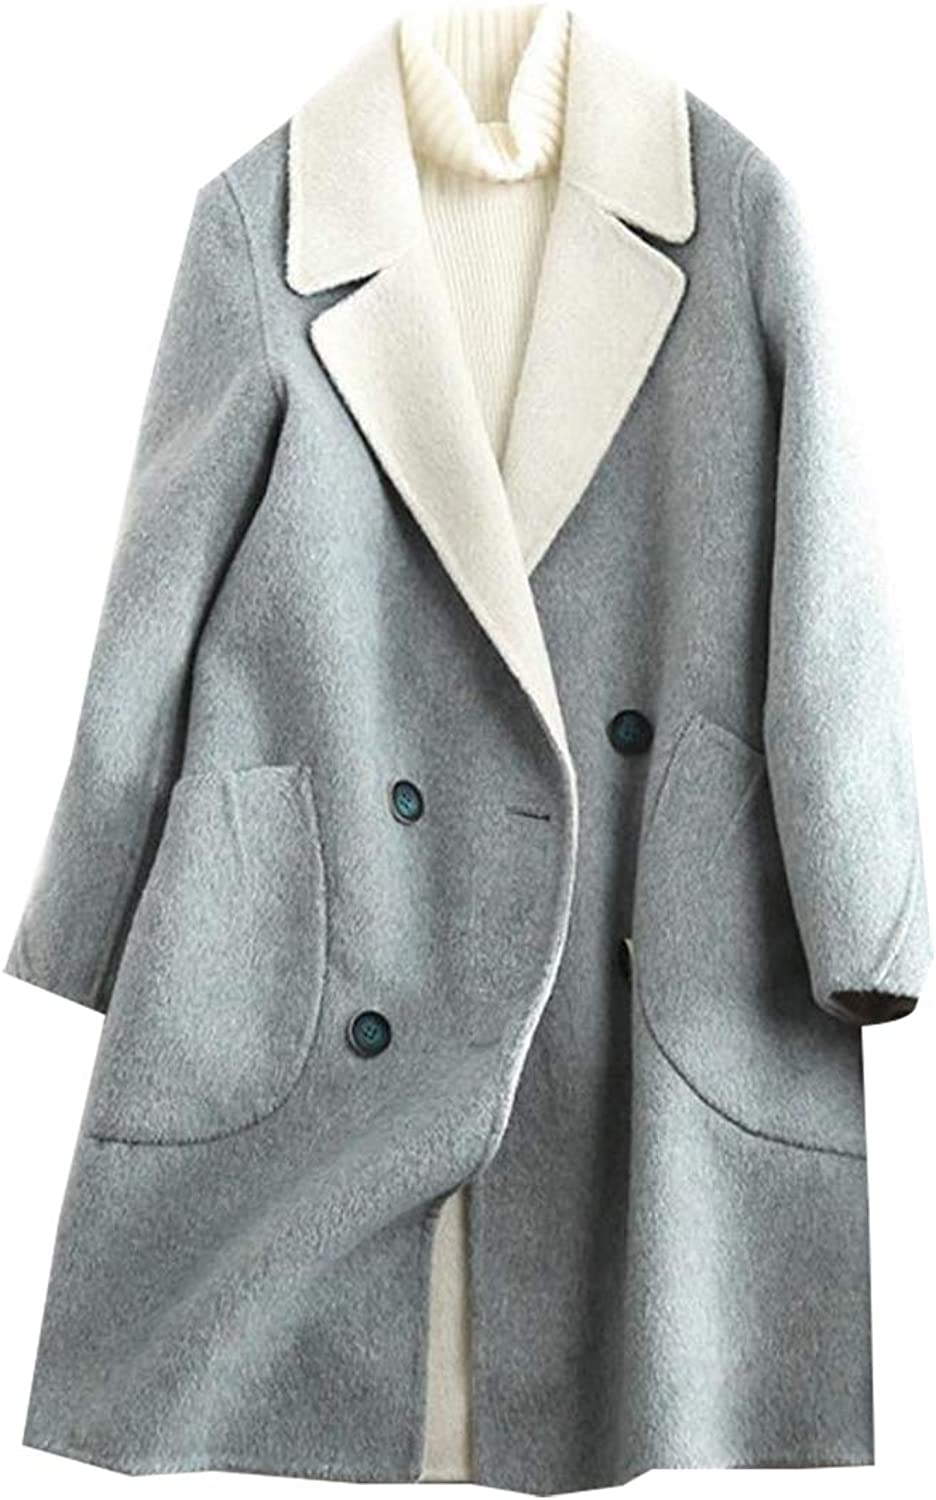 Esast Womens Winter Double Breasted Trench Coat Chelsea Tailoring Overcoat